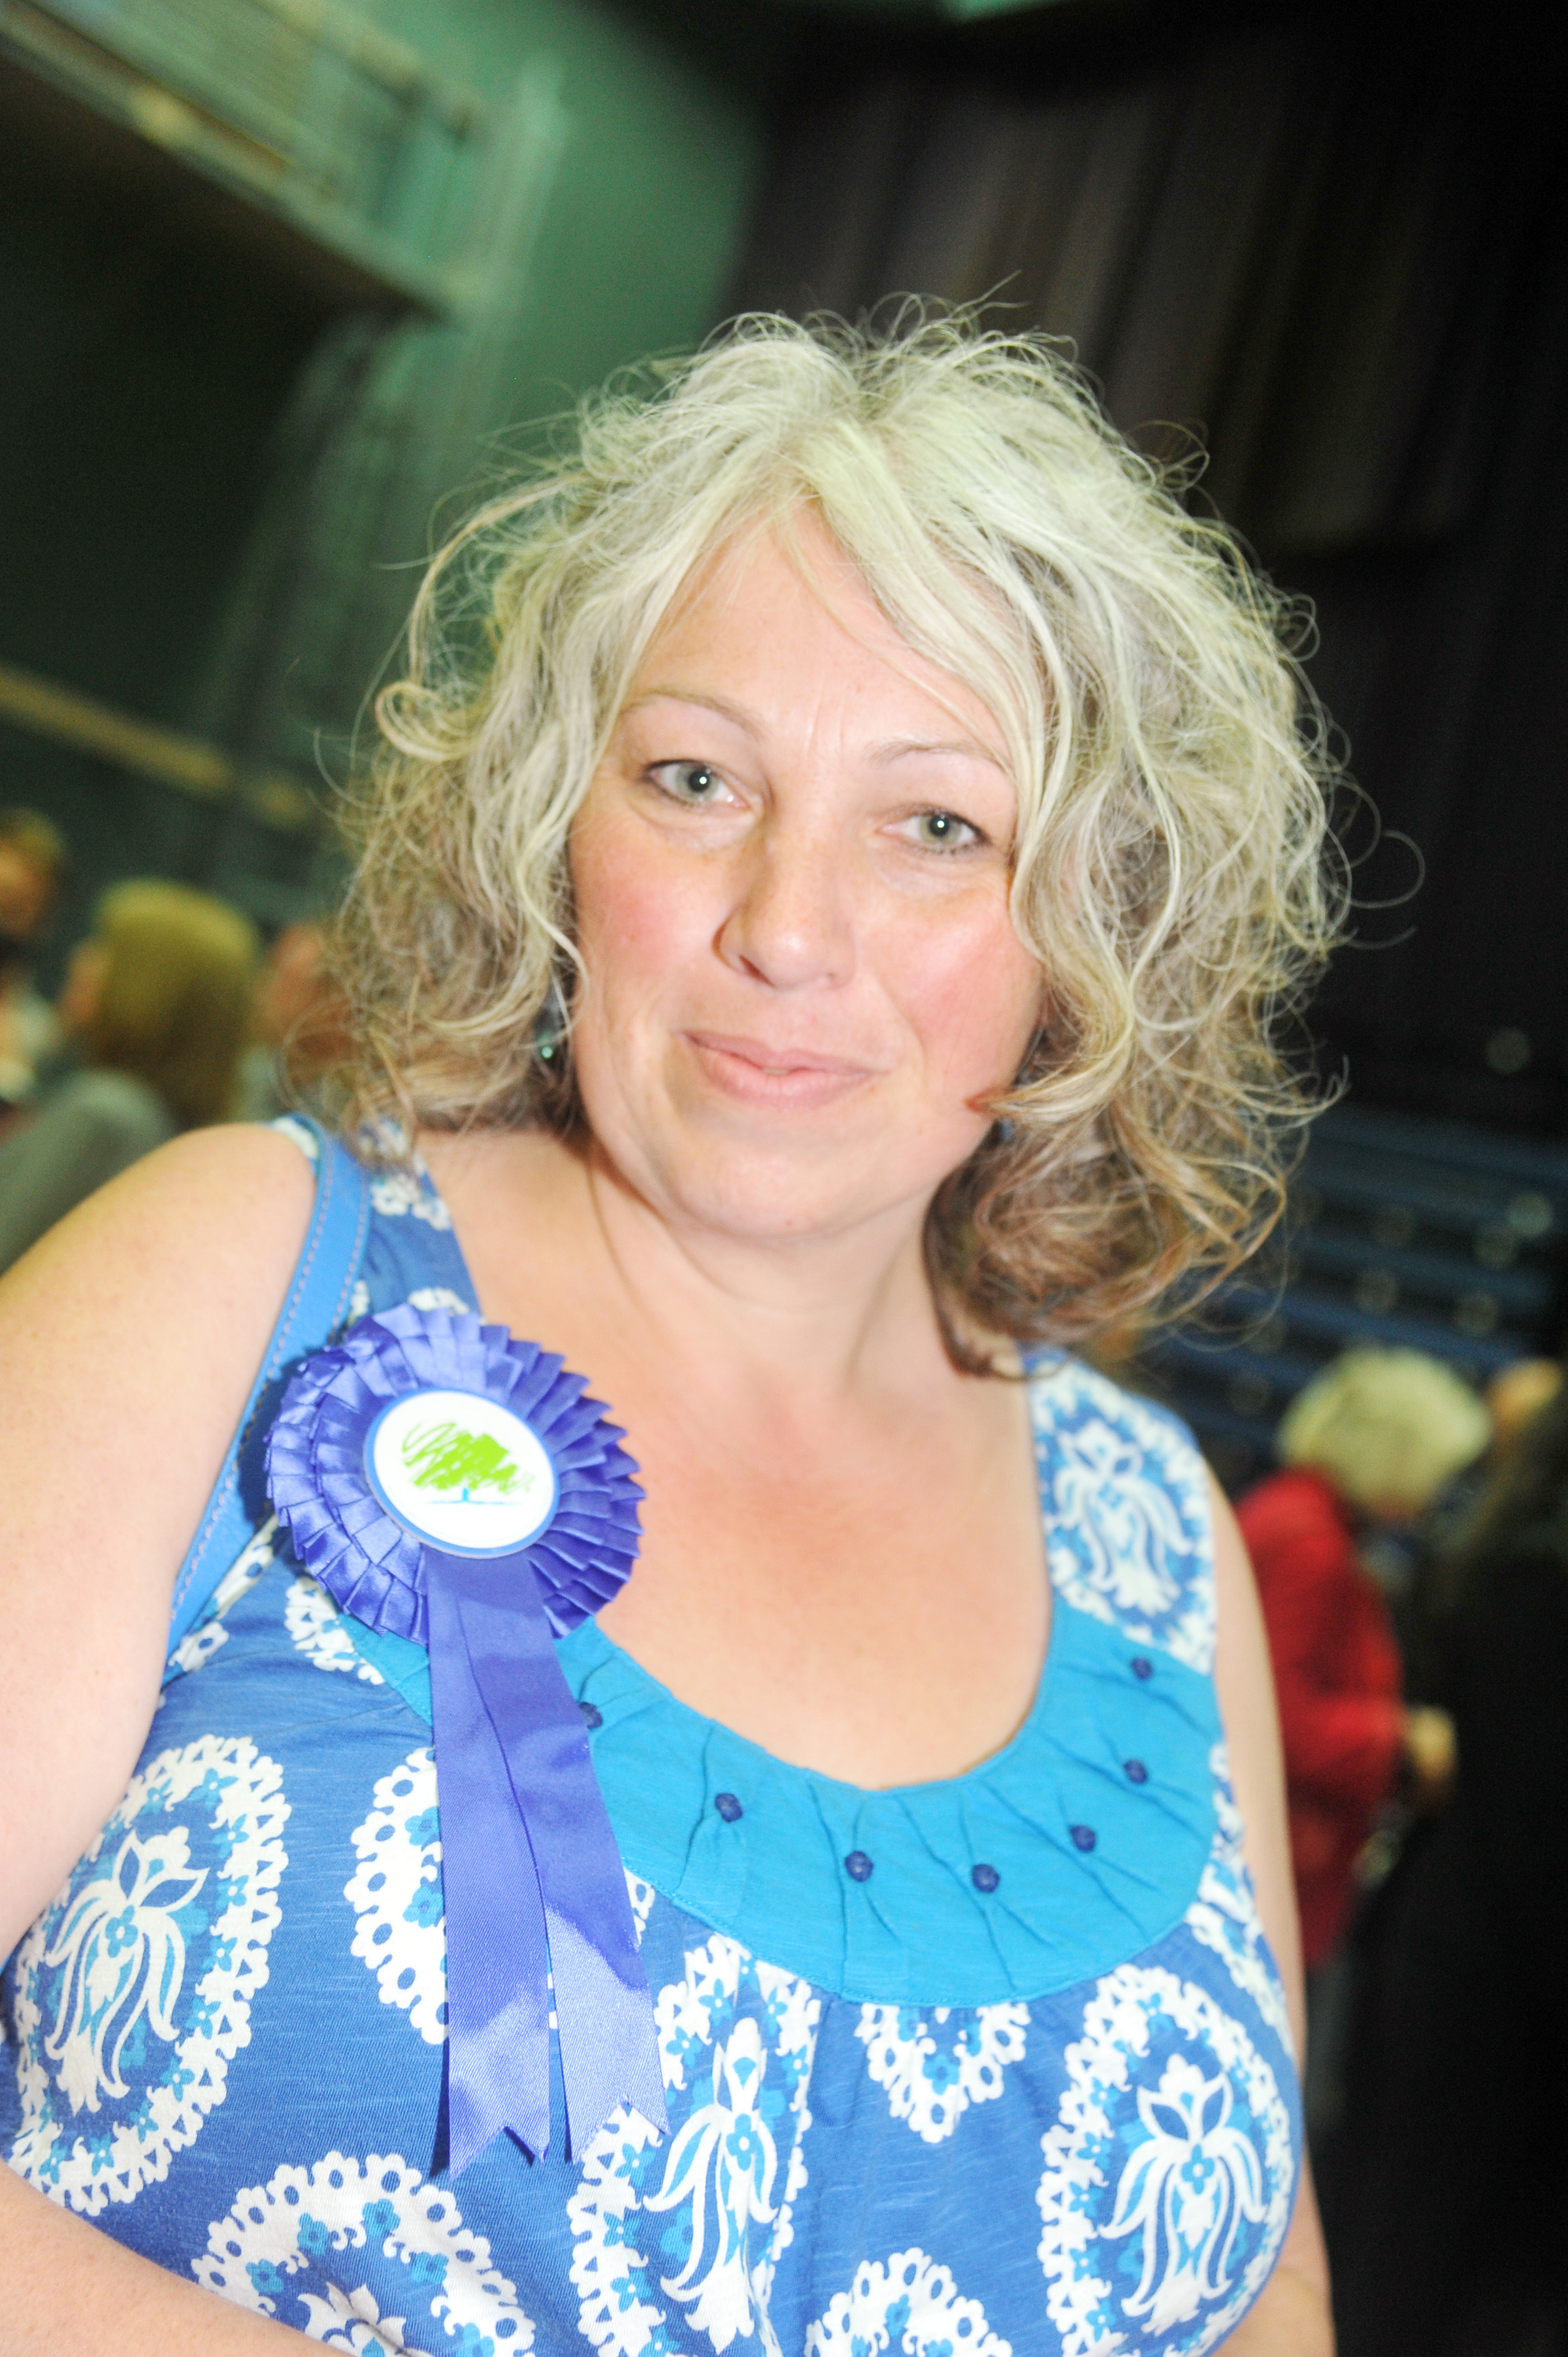 Elections 2015. Pictured Cllr Cathy Martyn for Wroughton and Wichelstowe ward..08/05/15 Thomas Kelsey.